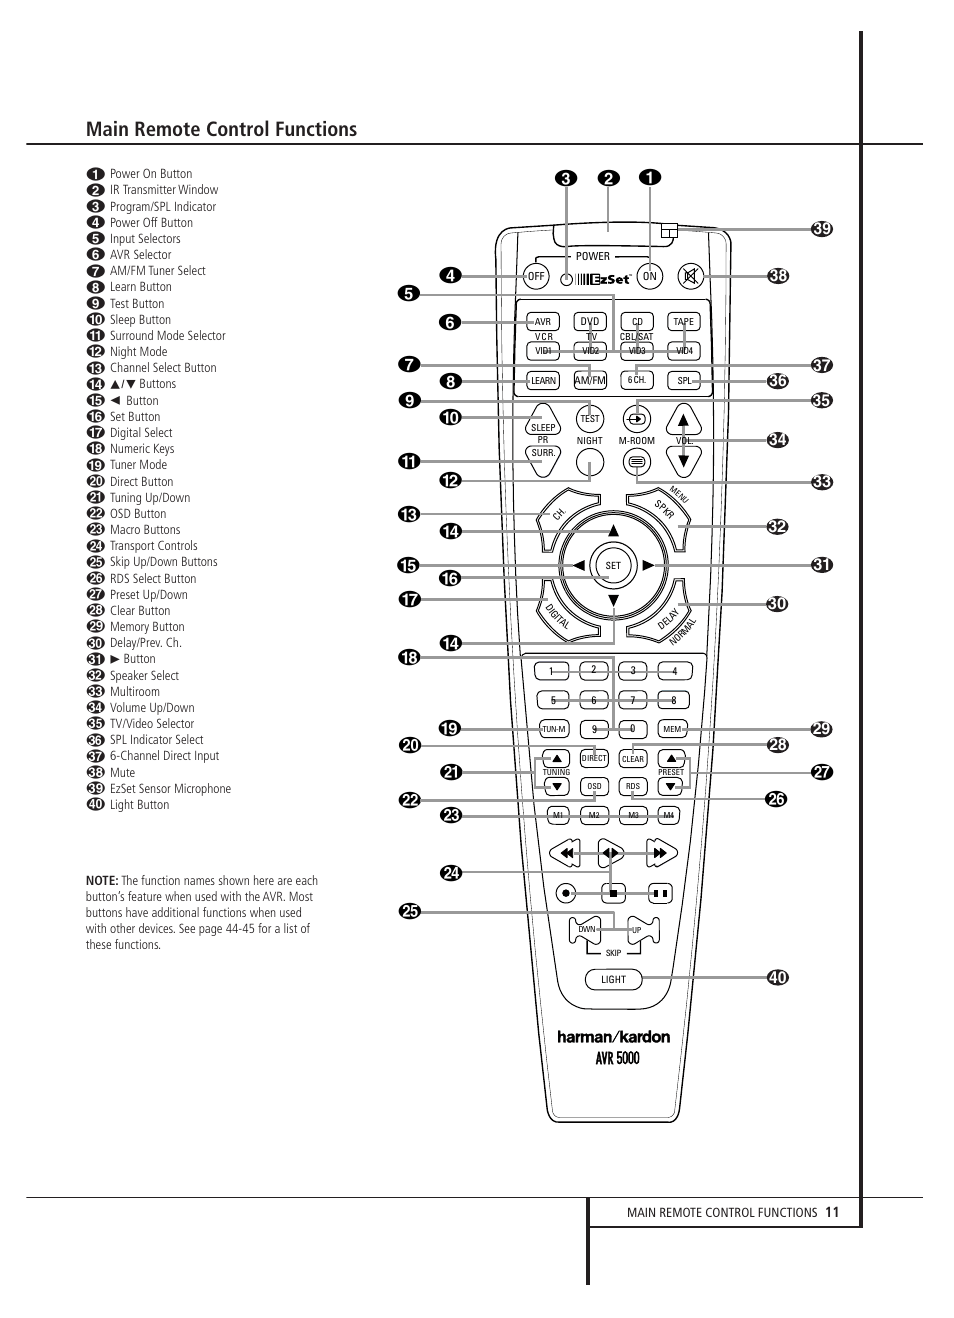 main remote control functions